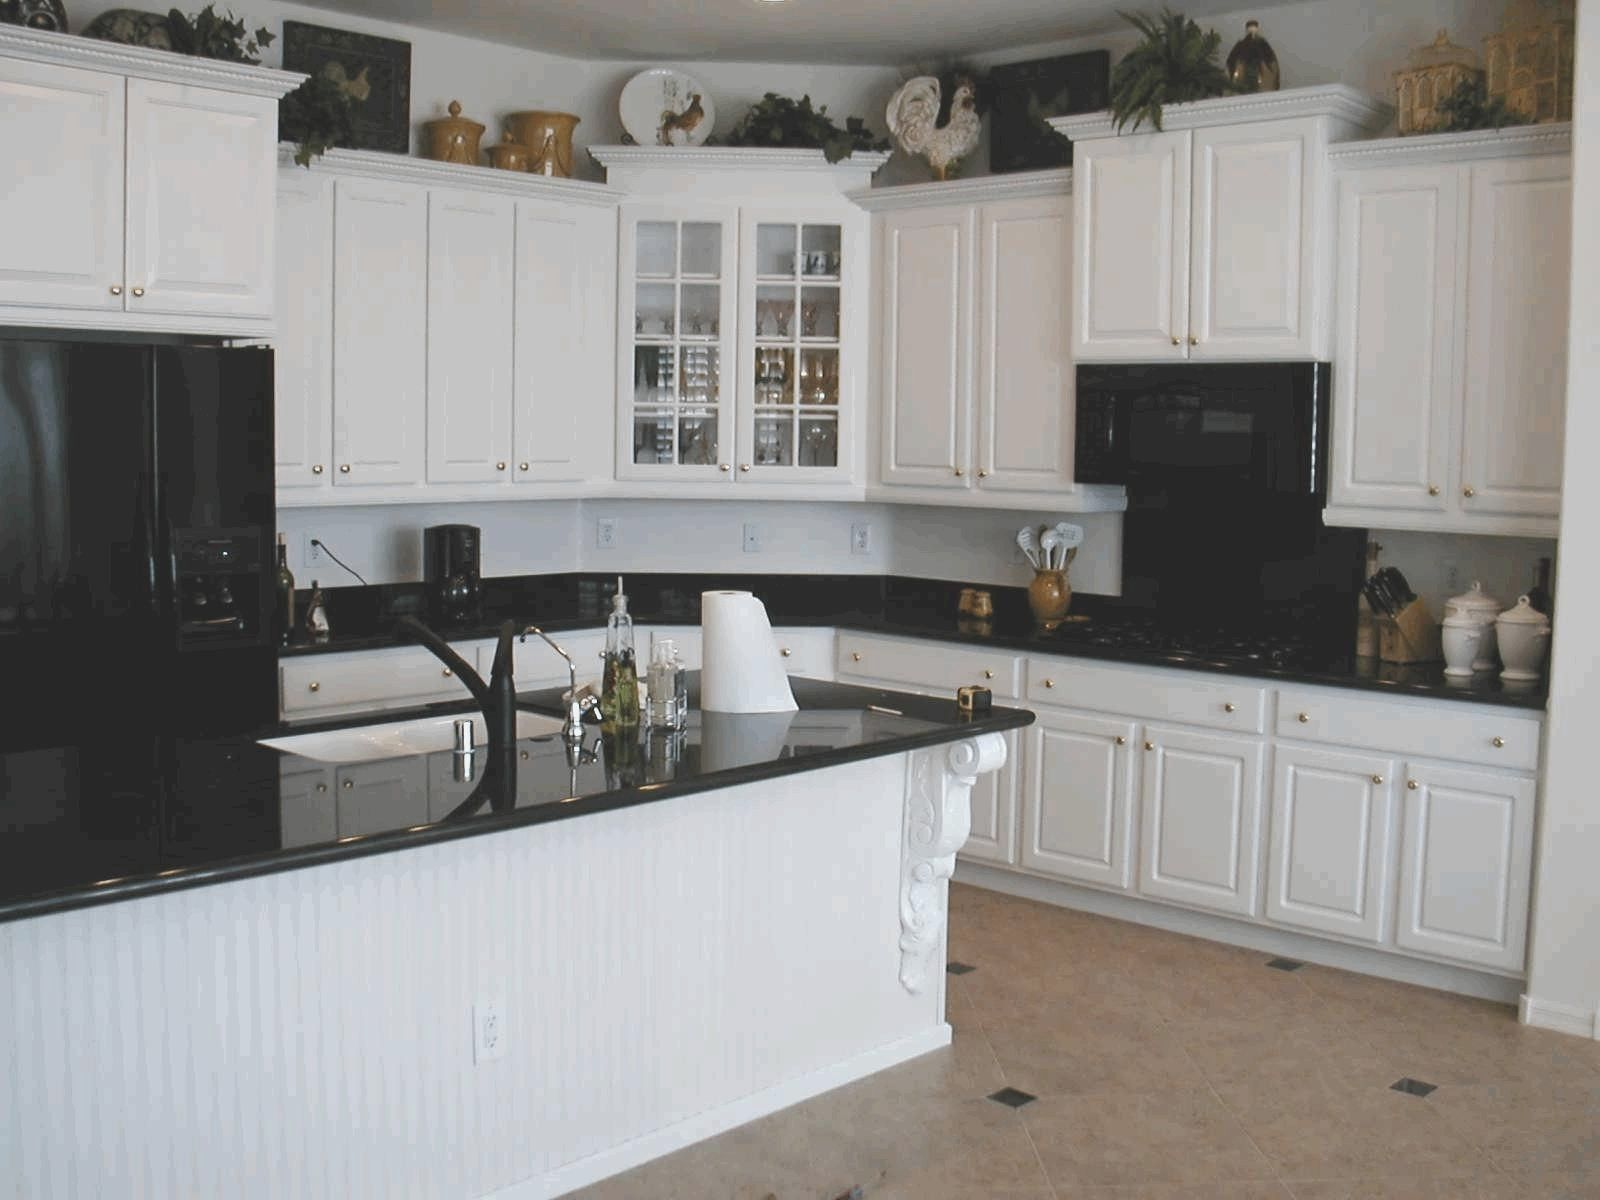 Home Depot Stock Kitchen Cabinets Home Depot Kitchen Cabinets